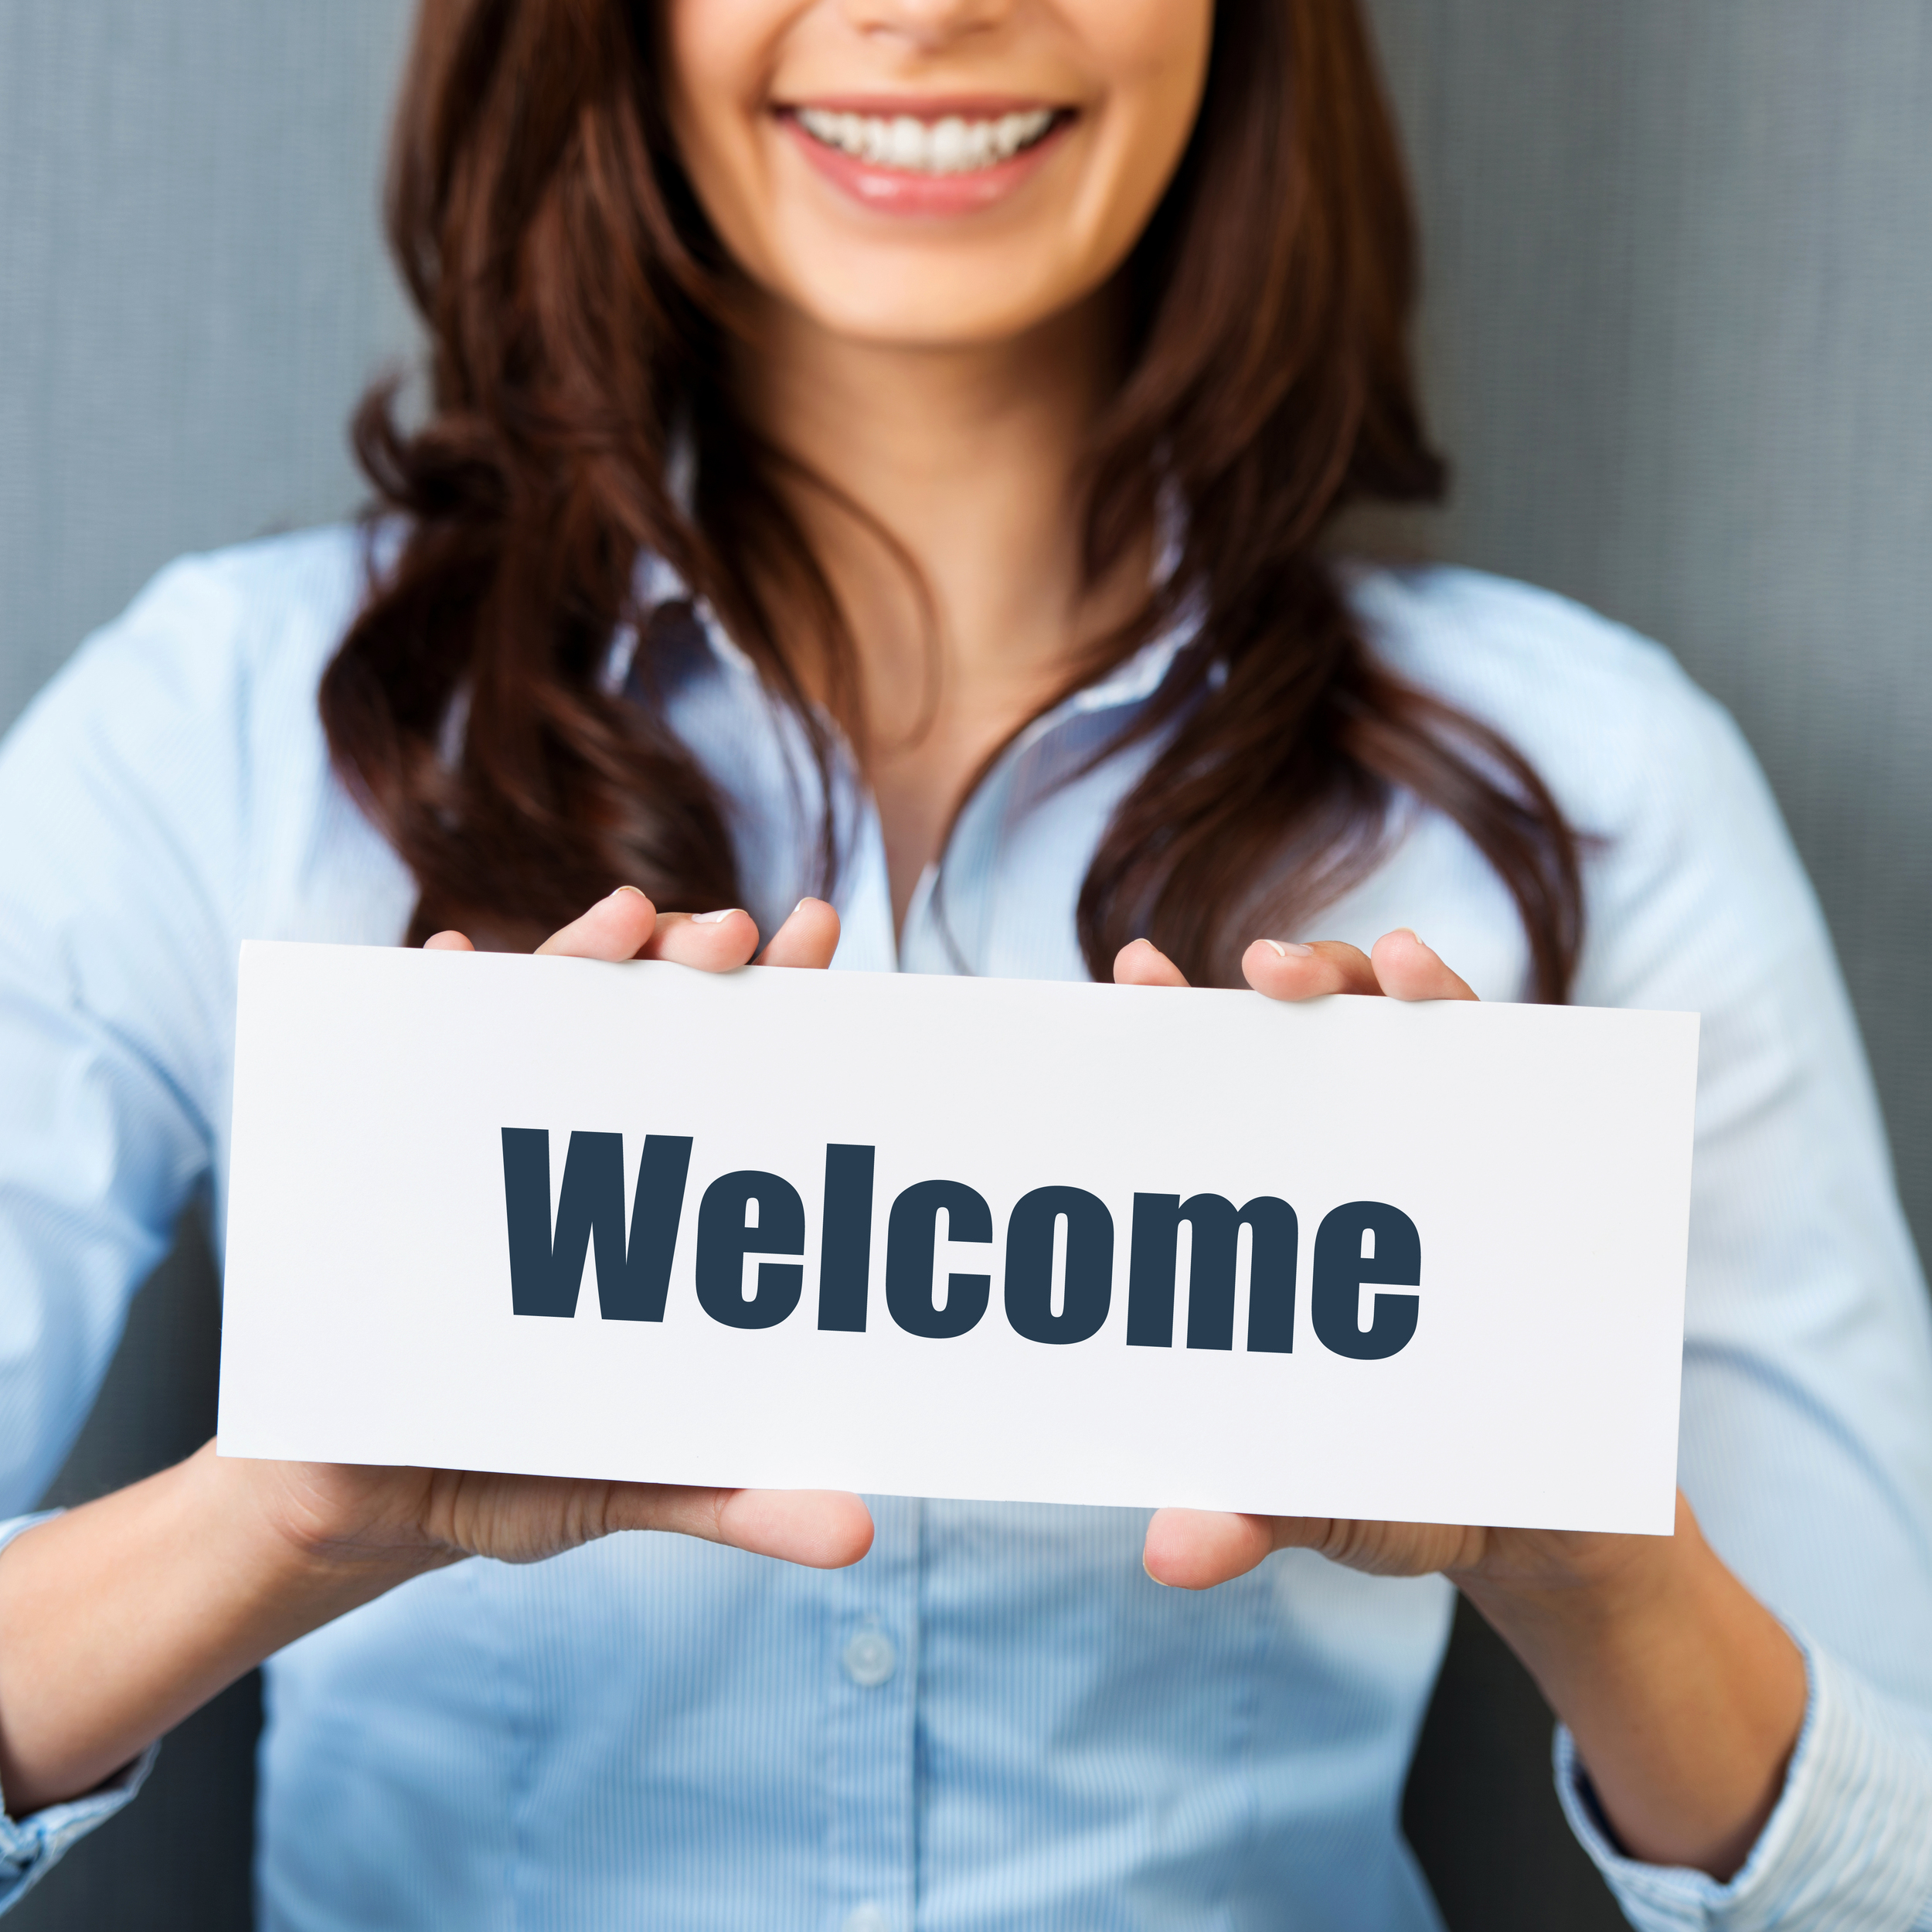 Welcome to AmeriCenters! - Welcome! We are so excited to have you as a Virtual Office Plan client. We will be reaching out to you shortly to help you get setup and get the most out of your Virtual Office Plan. On behalf of our entire team, welcome and thank you for choosing AmeriCenters!The AmeriCenters Team